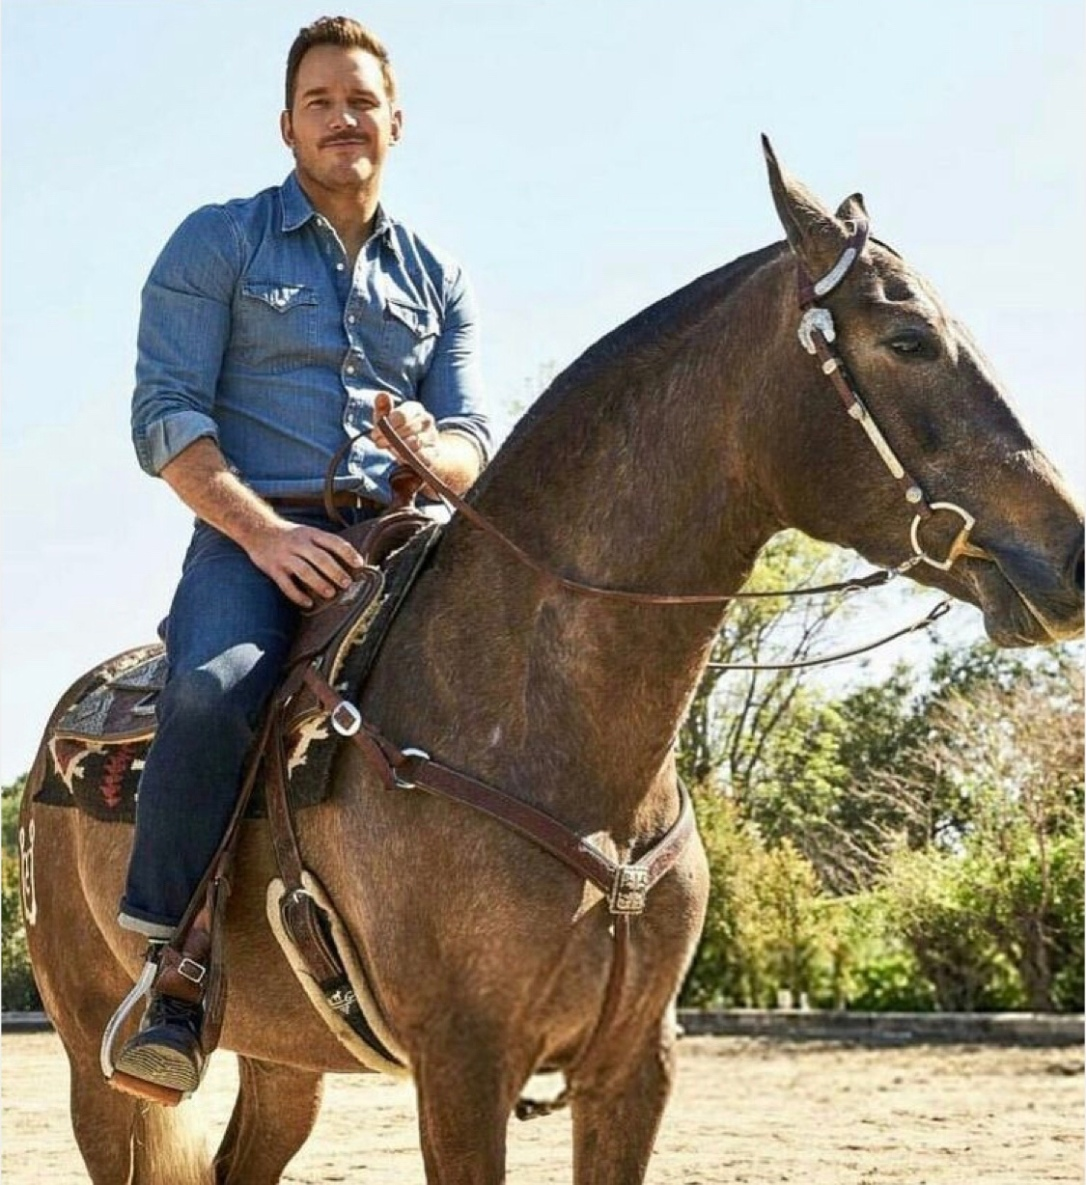 Chris Pratt riding a horse